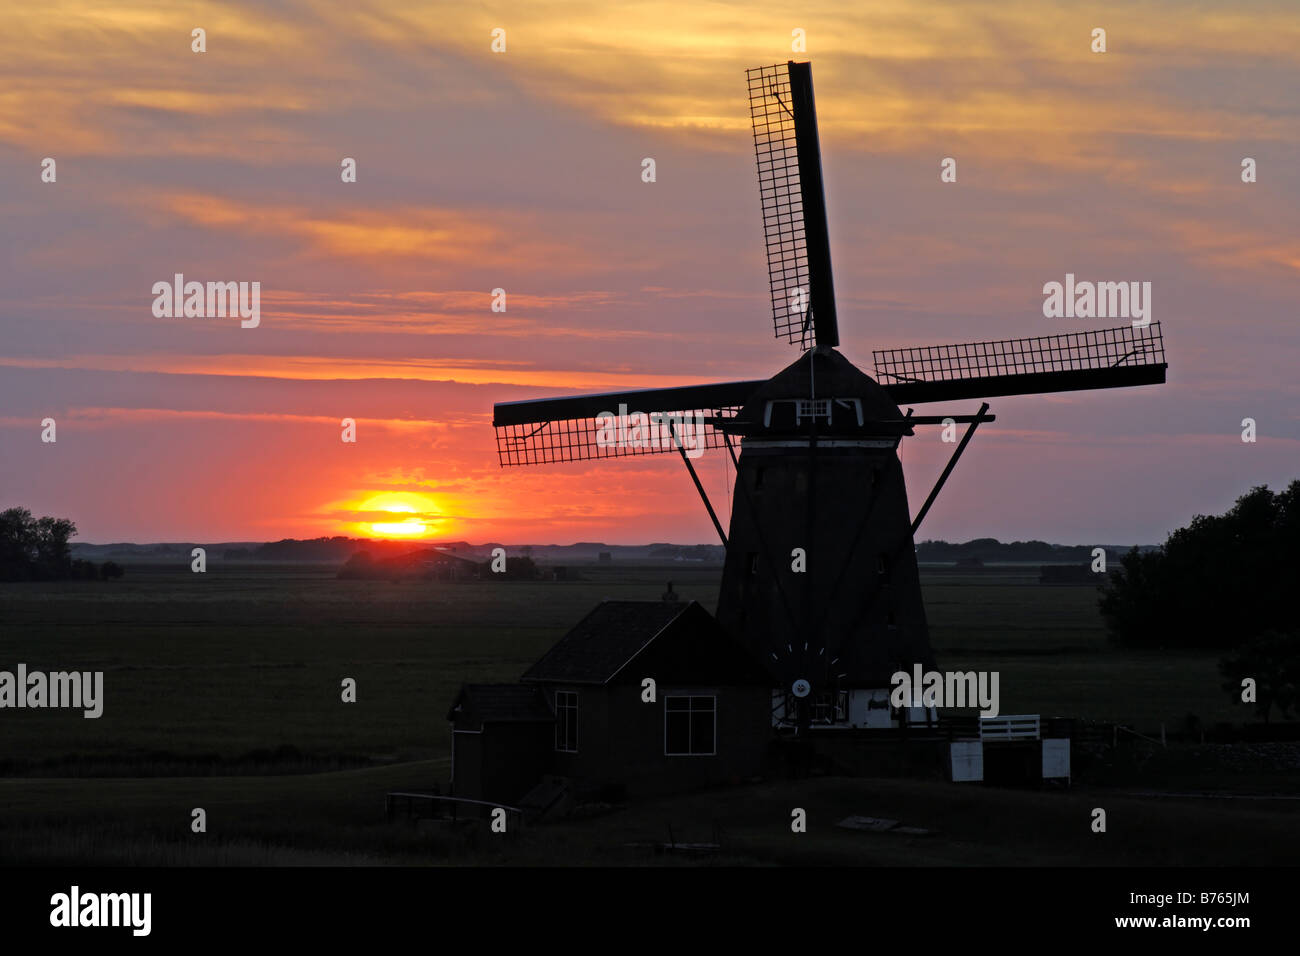 dutch windmill red sunset backlight holland texel island sillhouette afterglow evening mood - Stock Image